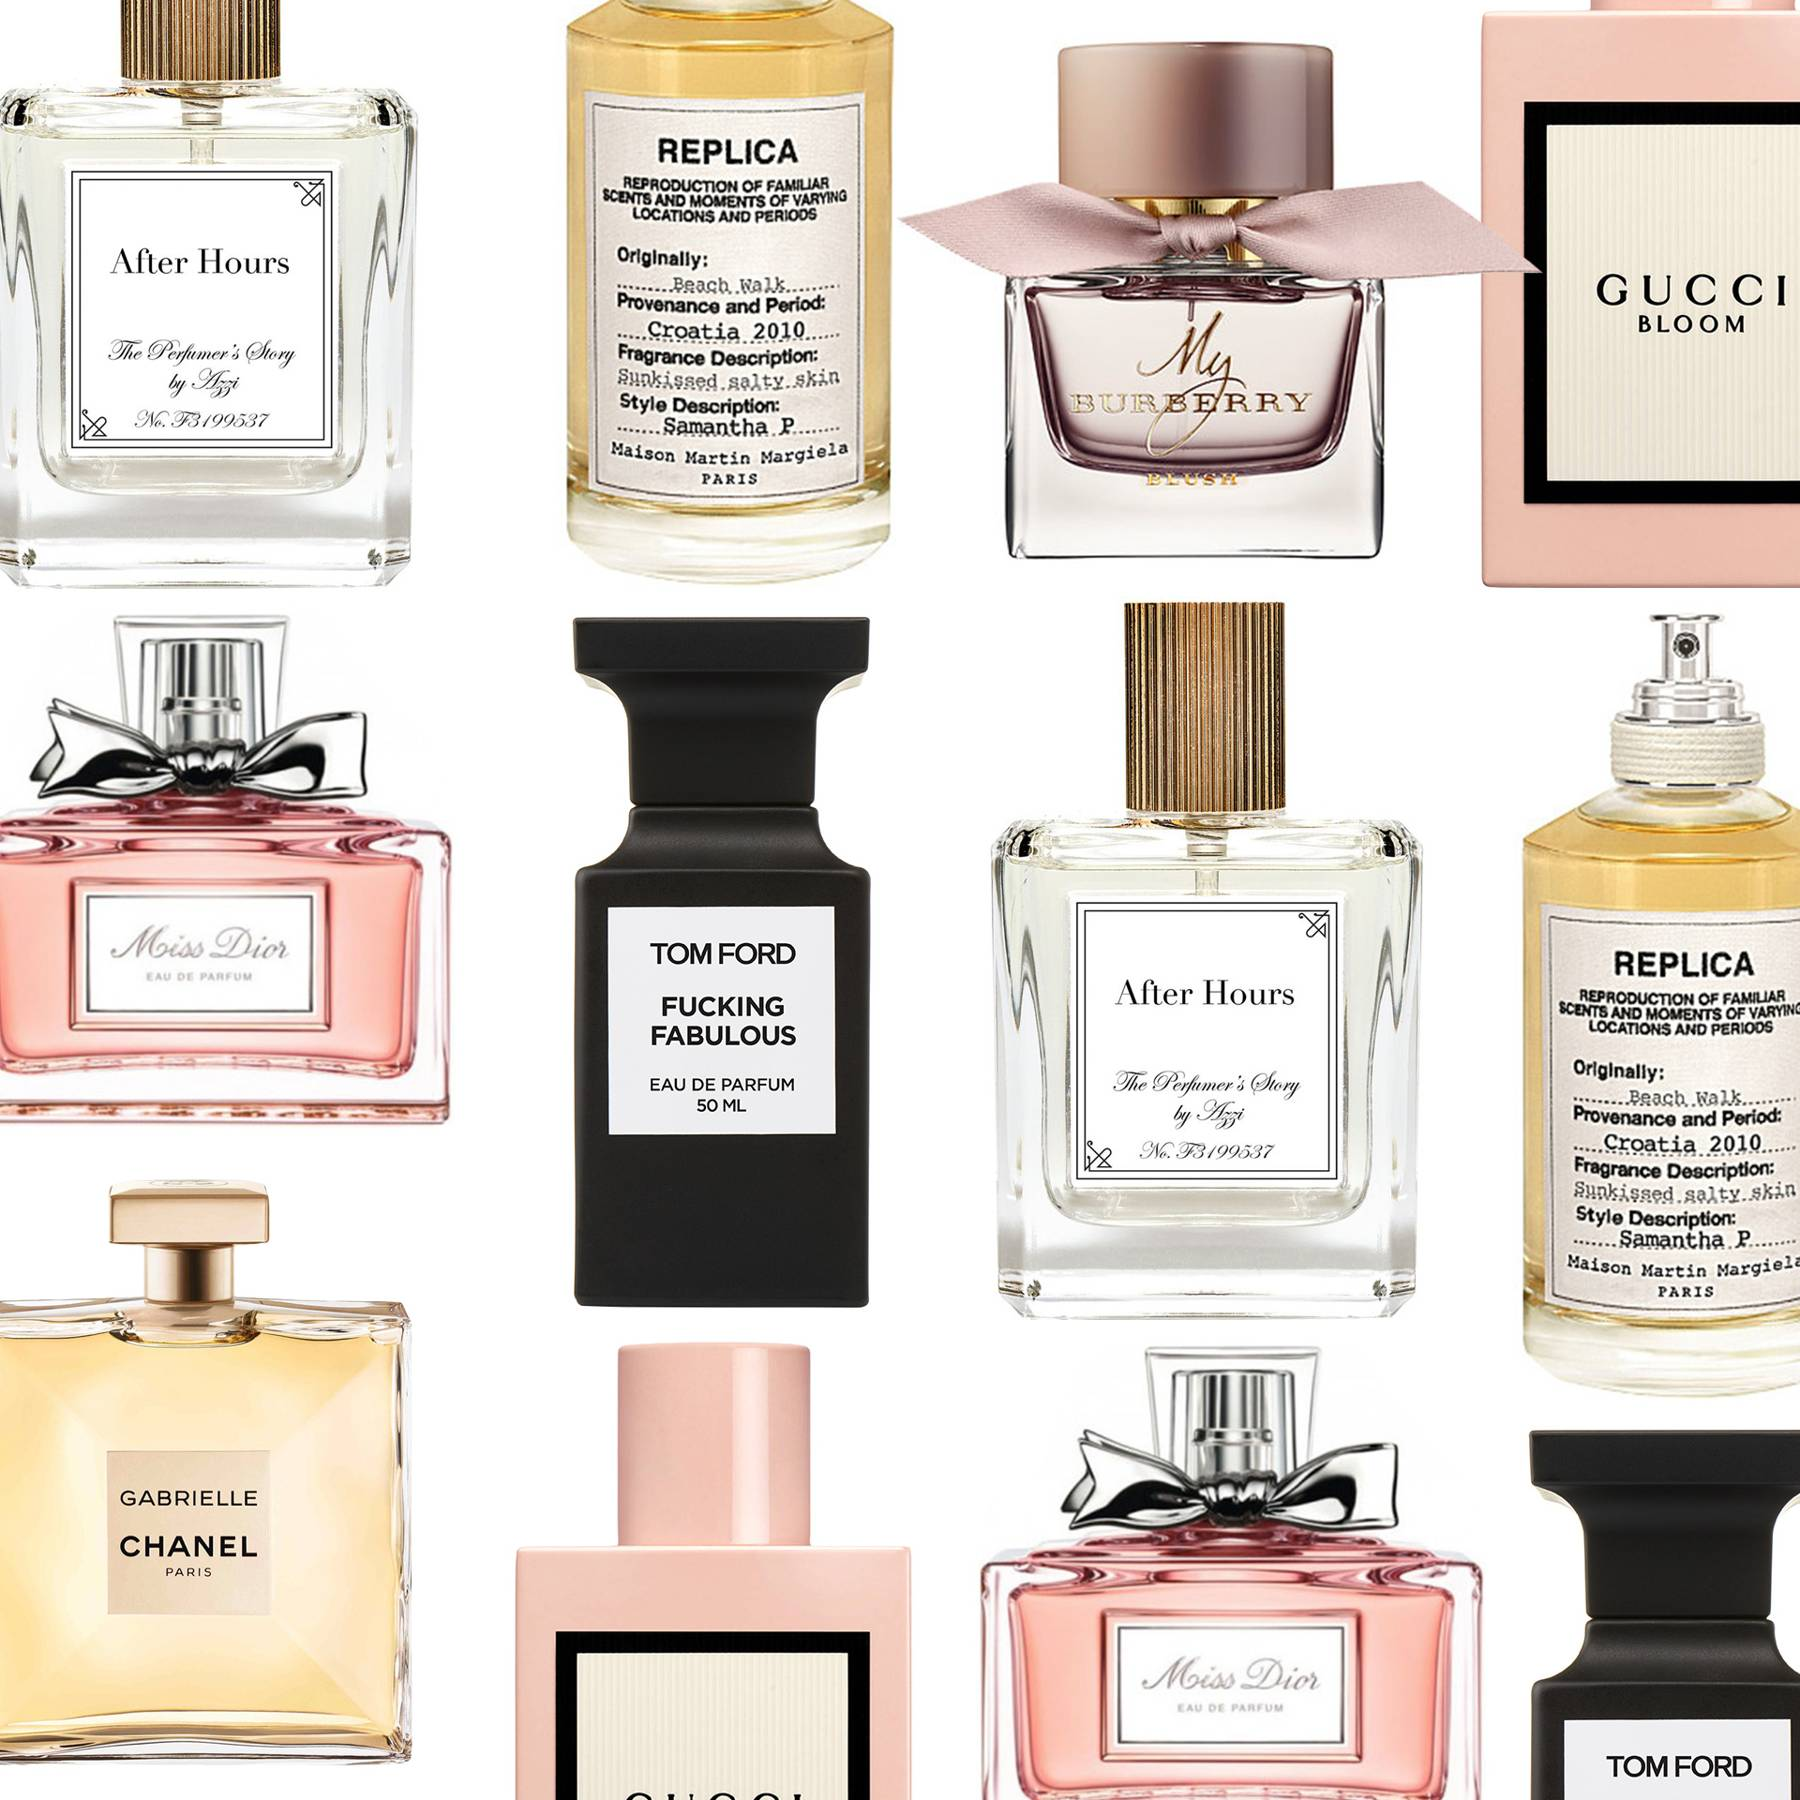 61e0baad6d38 Best fashion fragrances for aw17